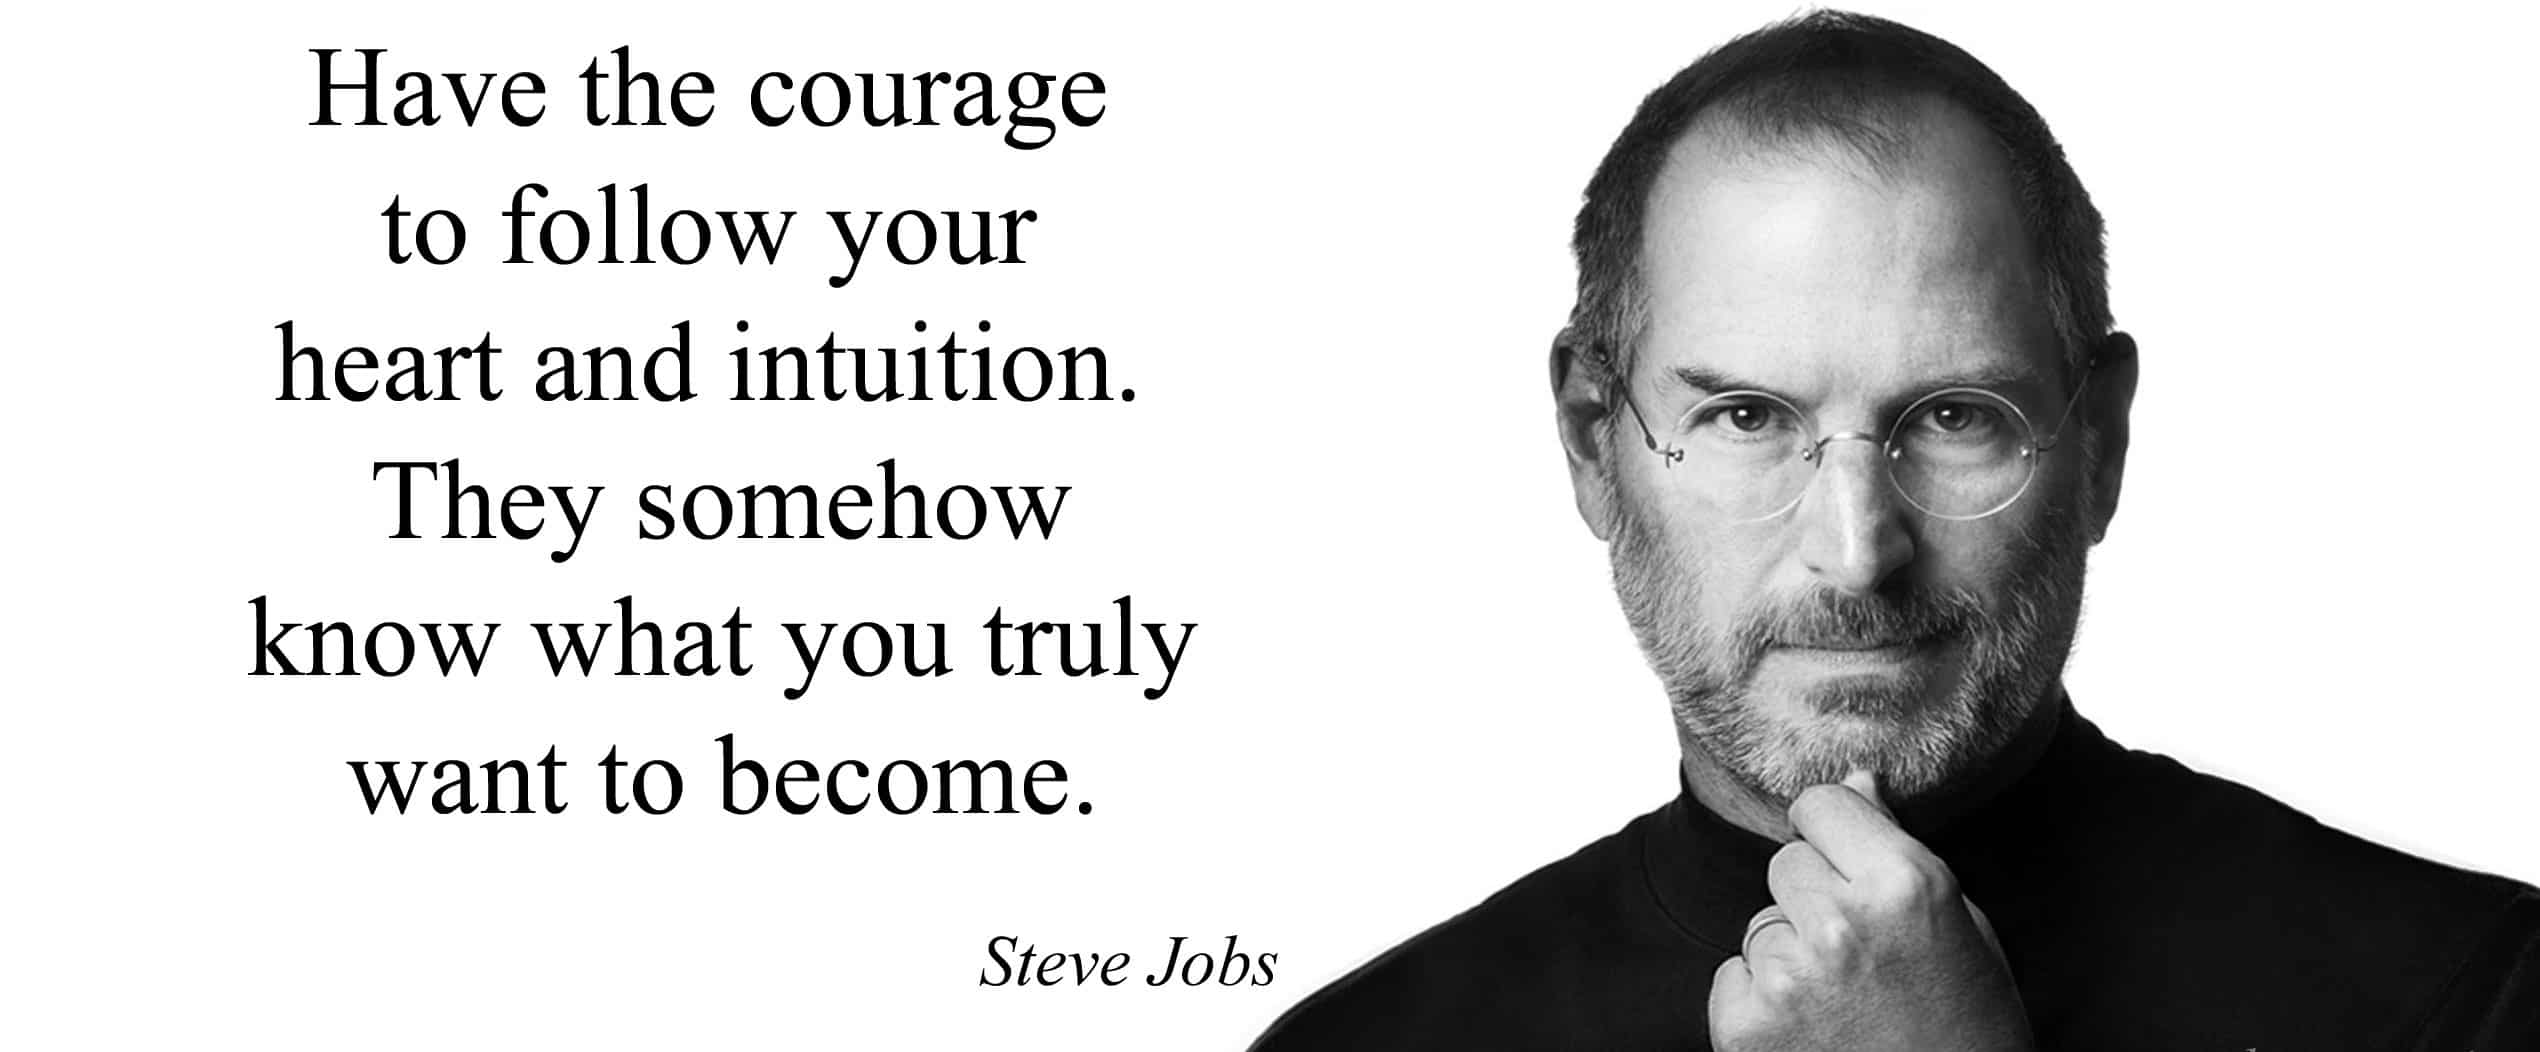 Steve-Jobs-Follow-Heart-Intuition-Quote